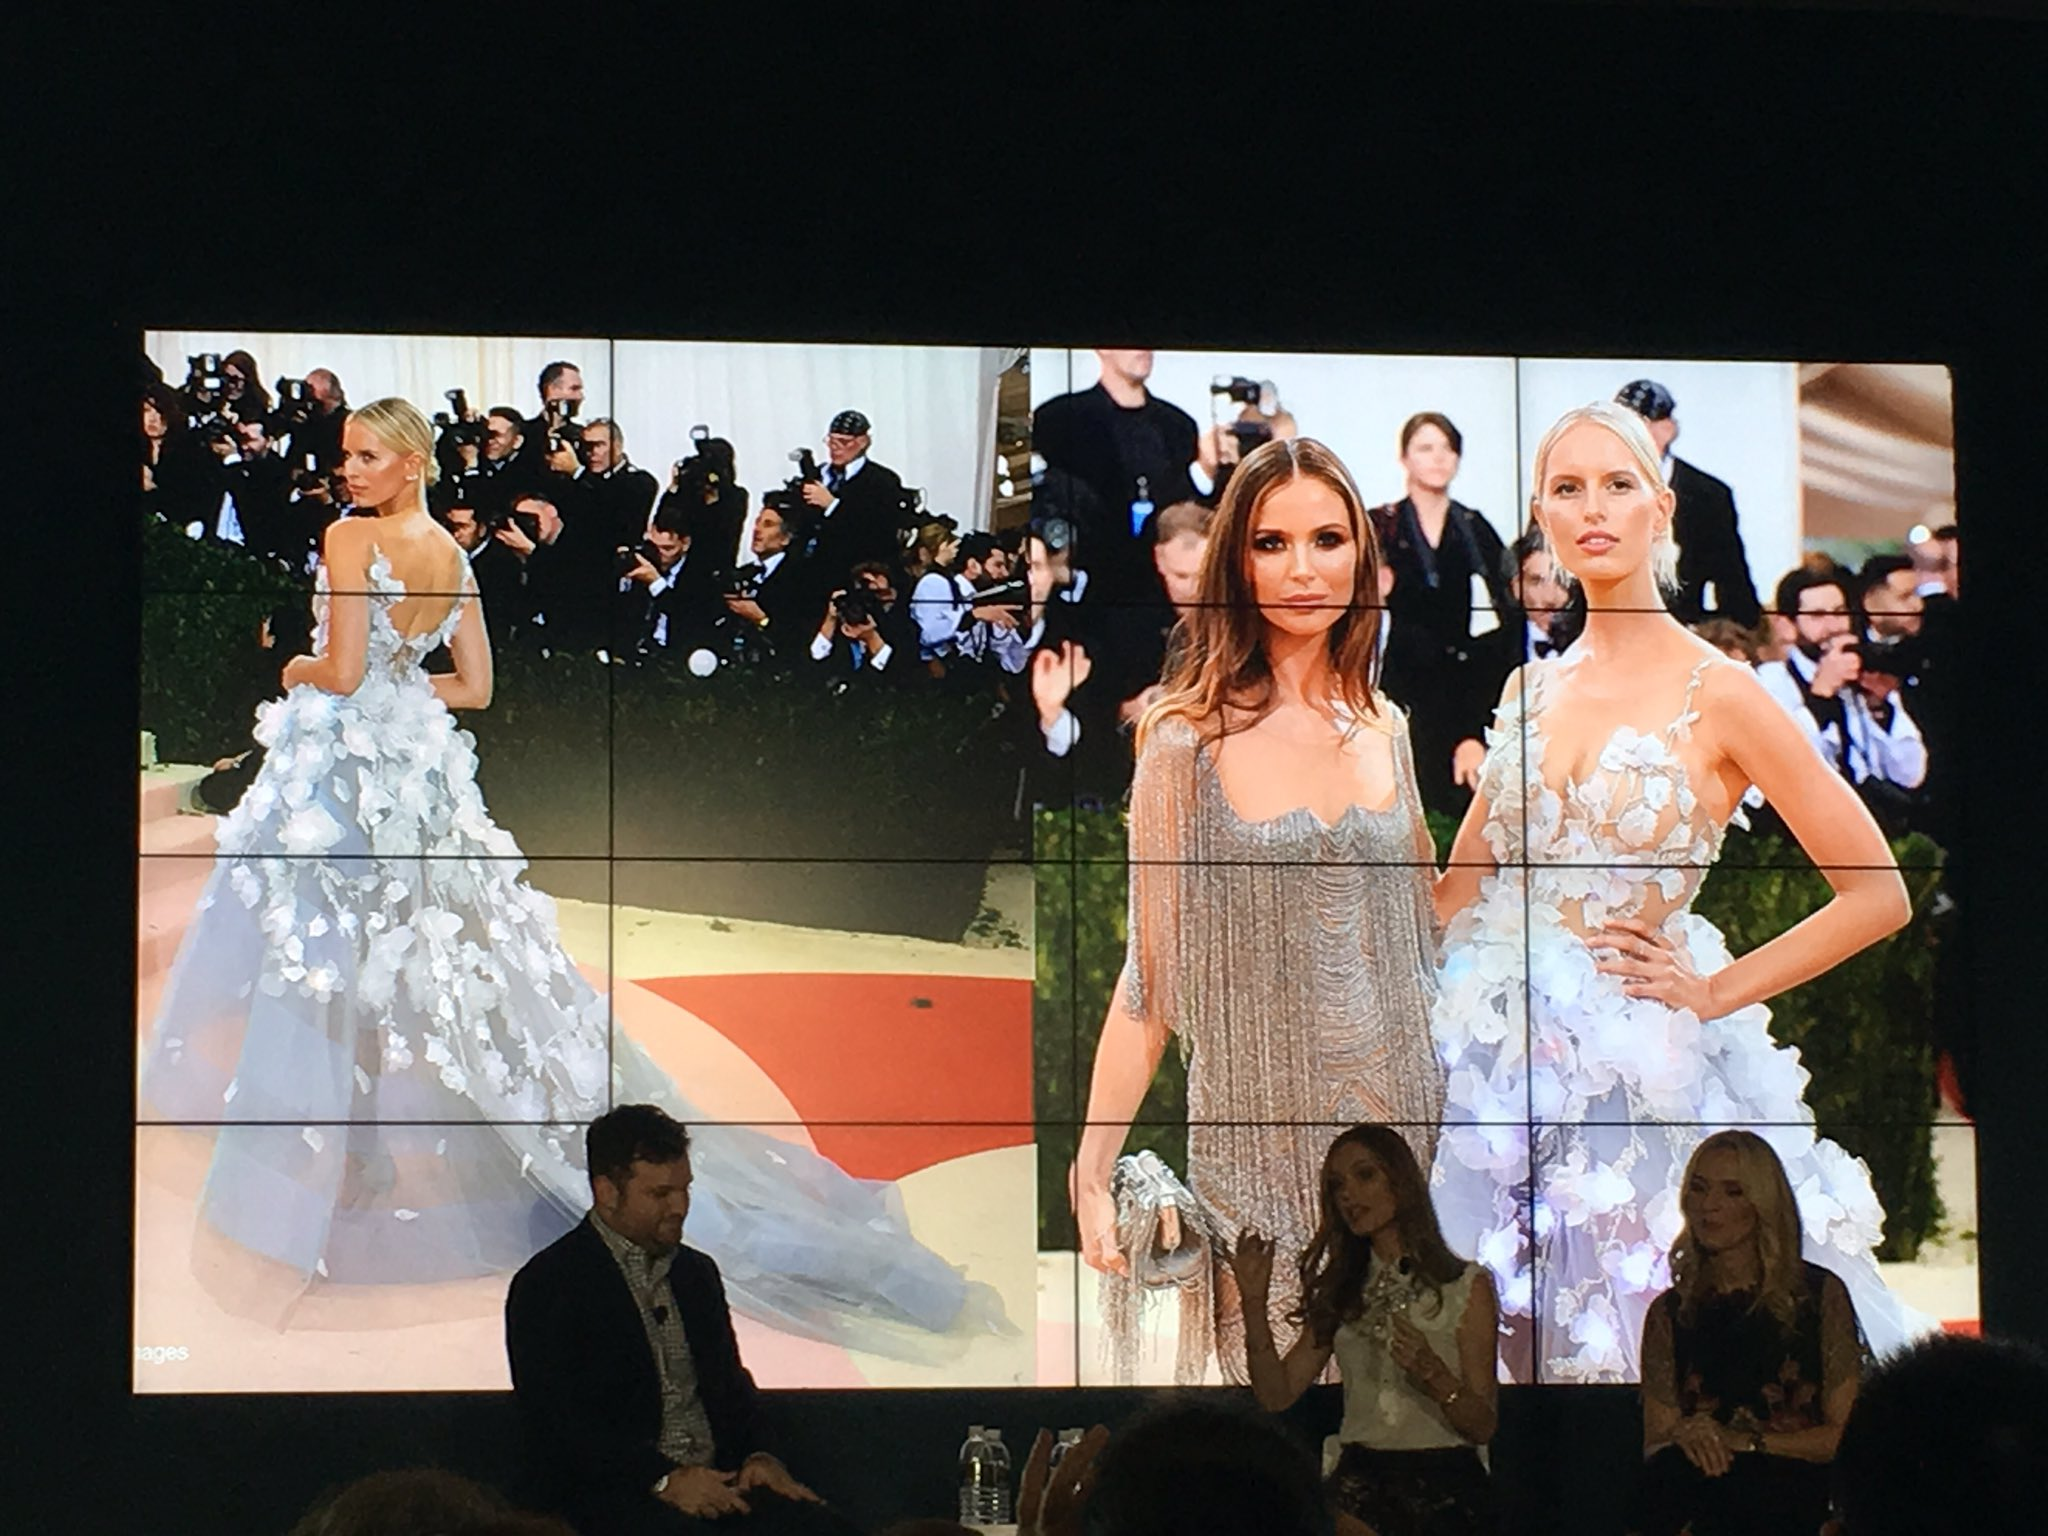 Listening to Marchesa designers talk about the famous #cognitive dress unveiled at the last #MetGala - stunning dress & #tech! #ibmwow https://t.co/nKUTNKj3B6